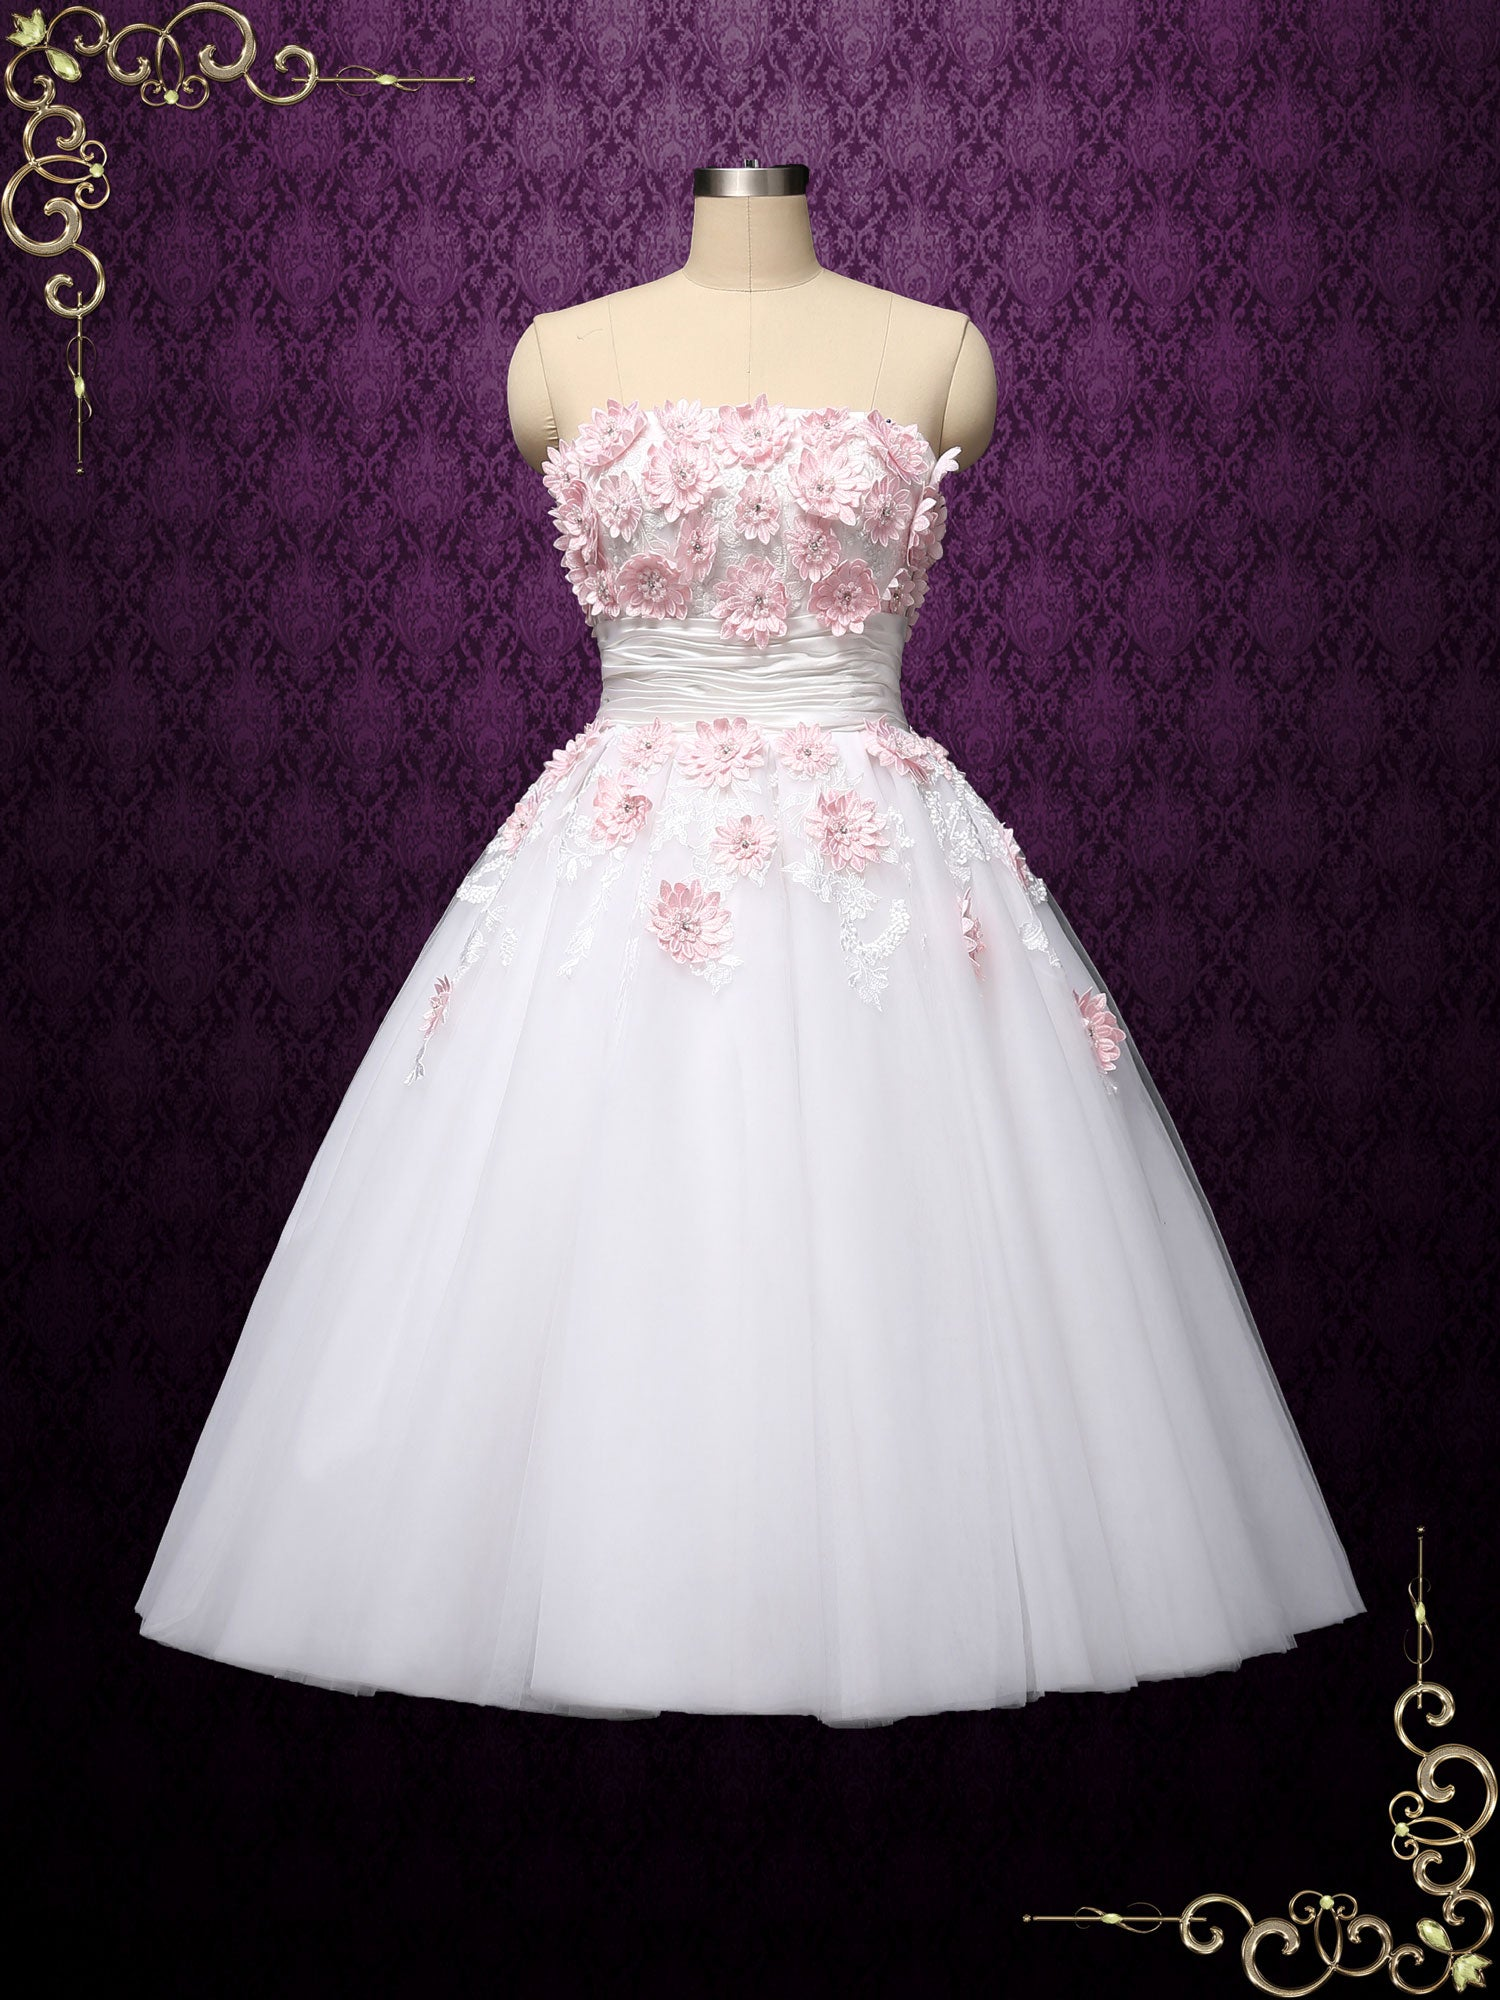 Retro Vintage Style Tea Length Strapless Tulle Wedding Dress with Pink  Daisy Floral Applique